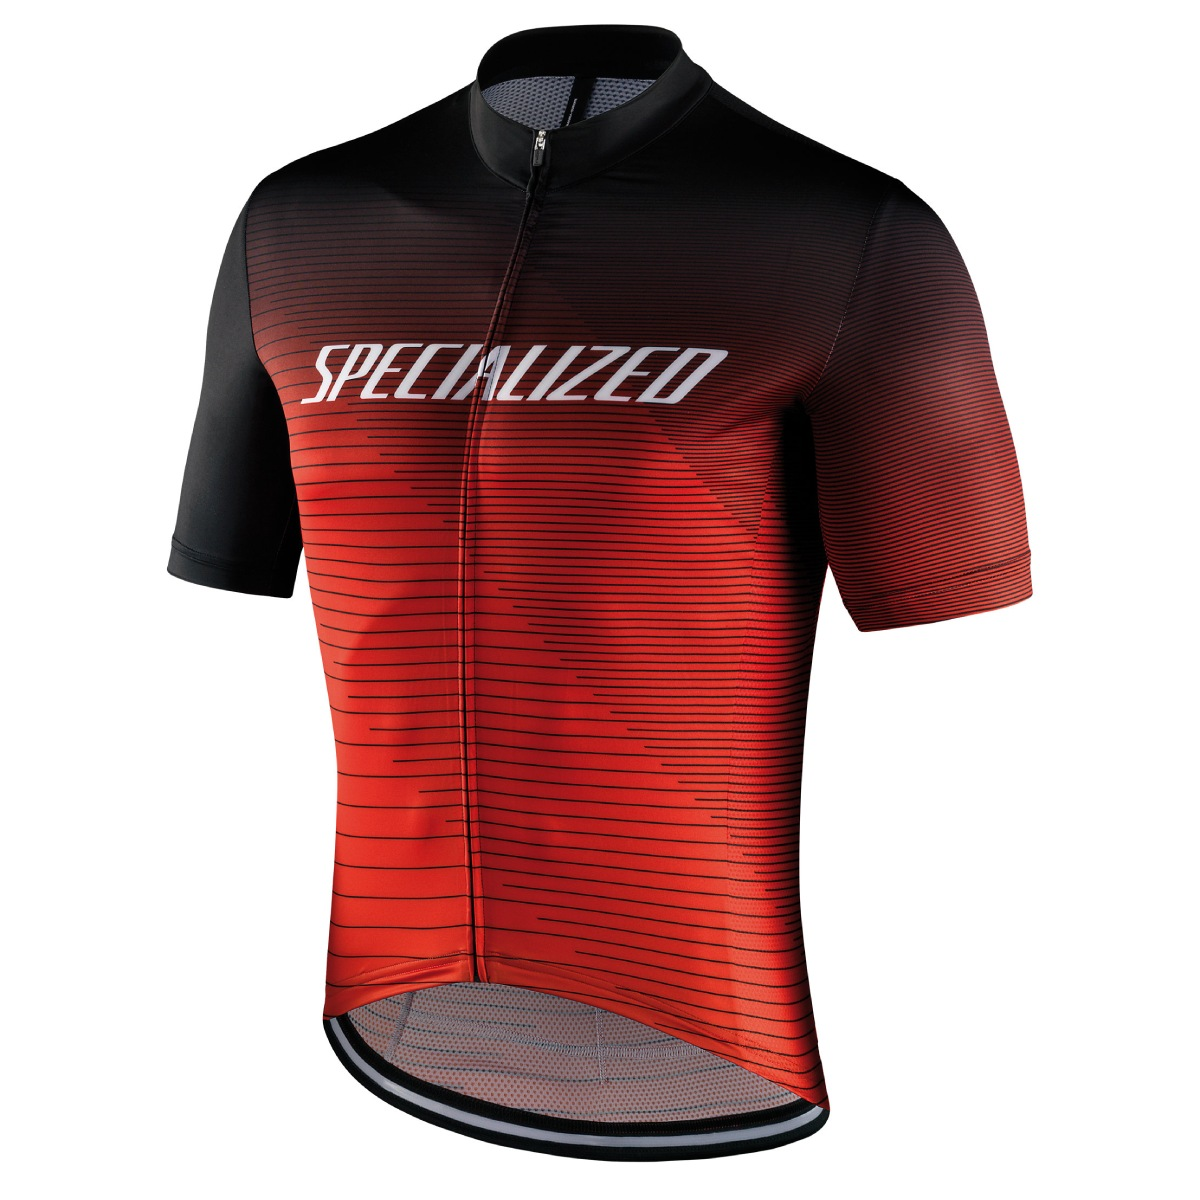 MAILLOT SPECIALIZED RBX COMP LOGO TEAM